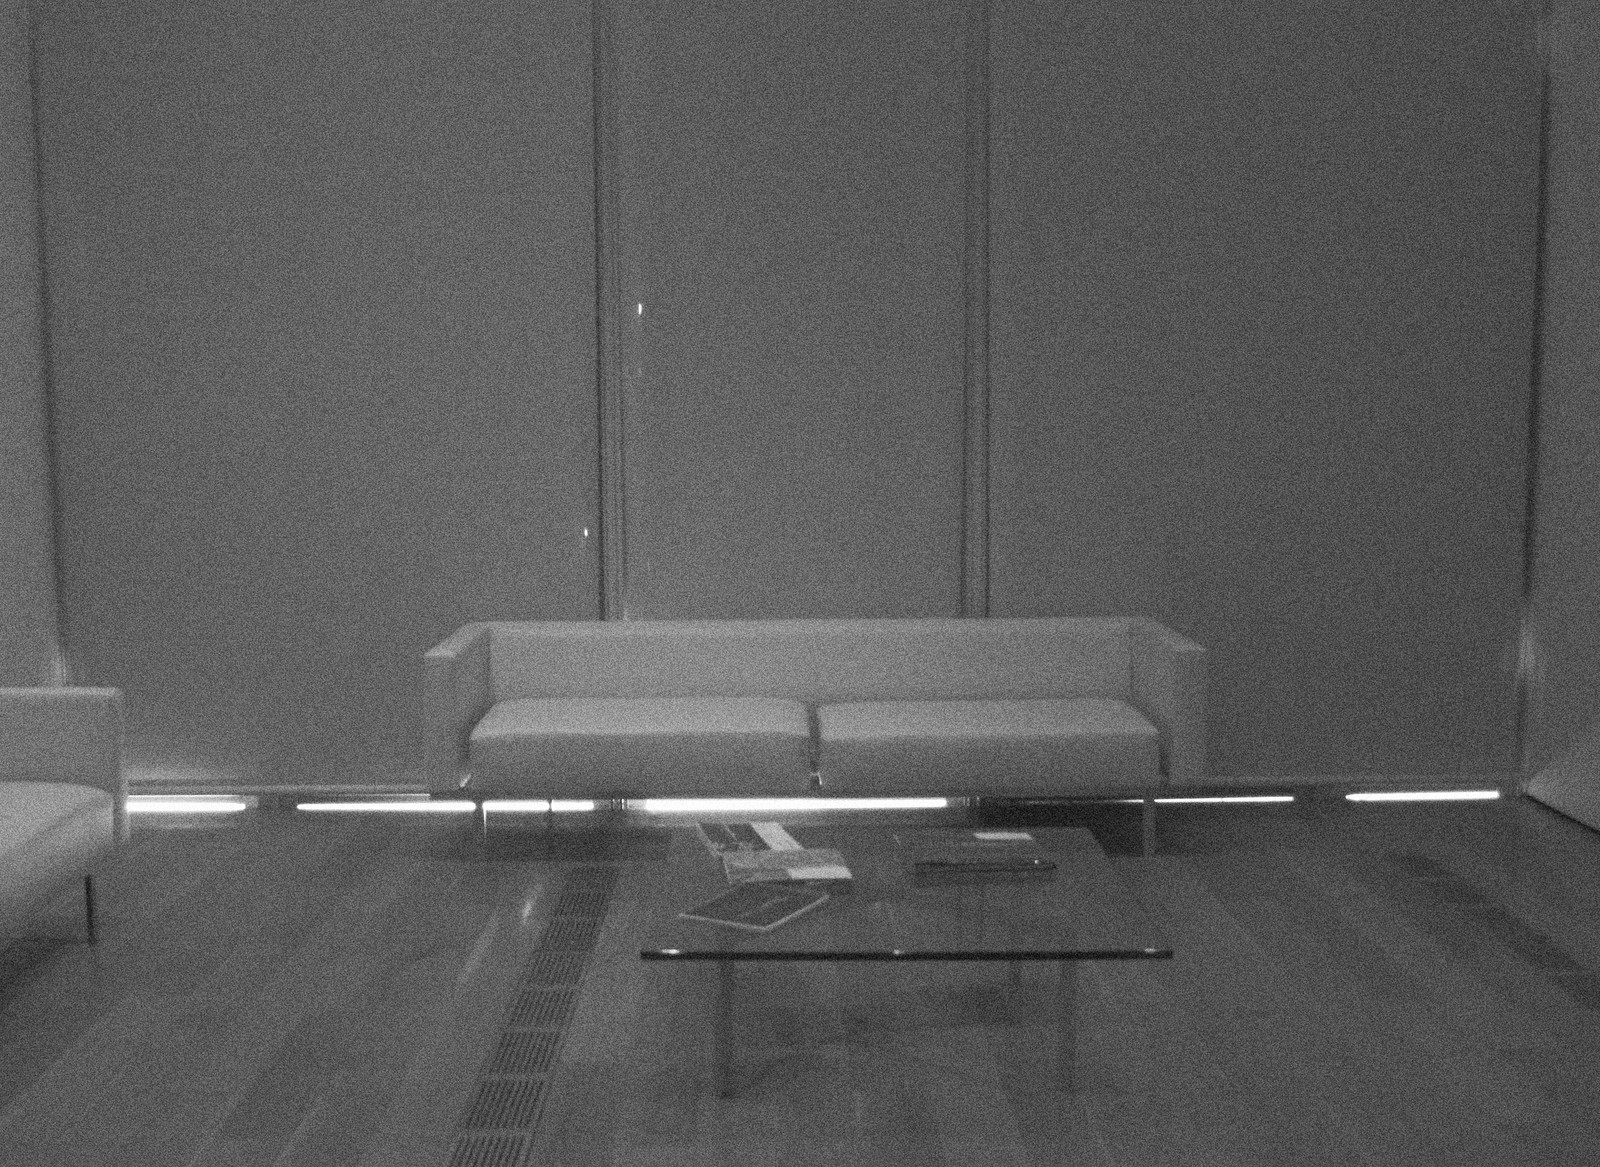 Sofa Not on Exhibit at the High Museum